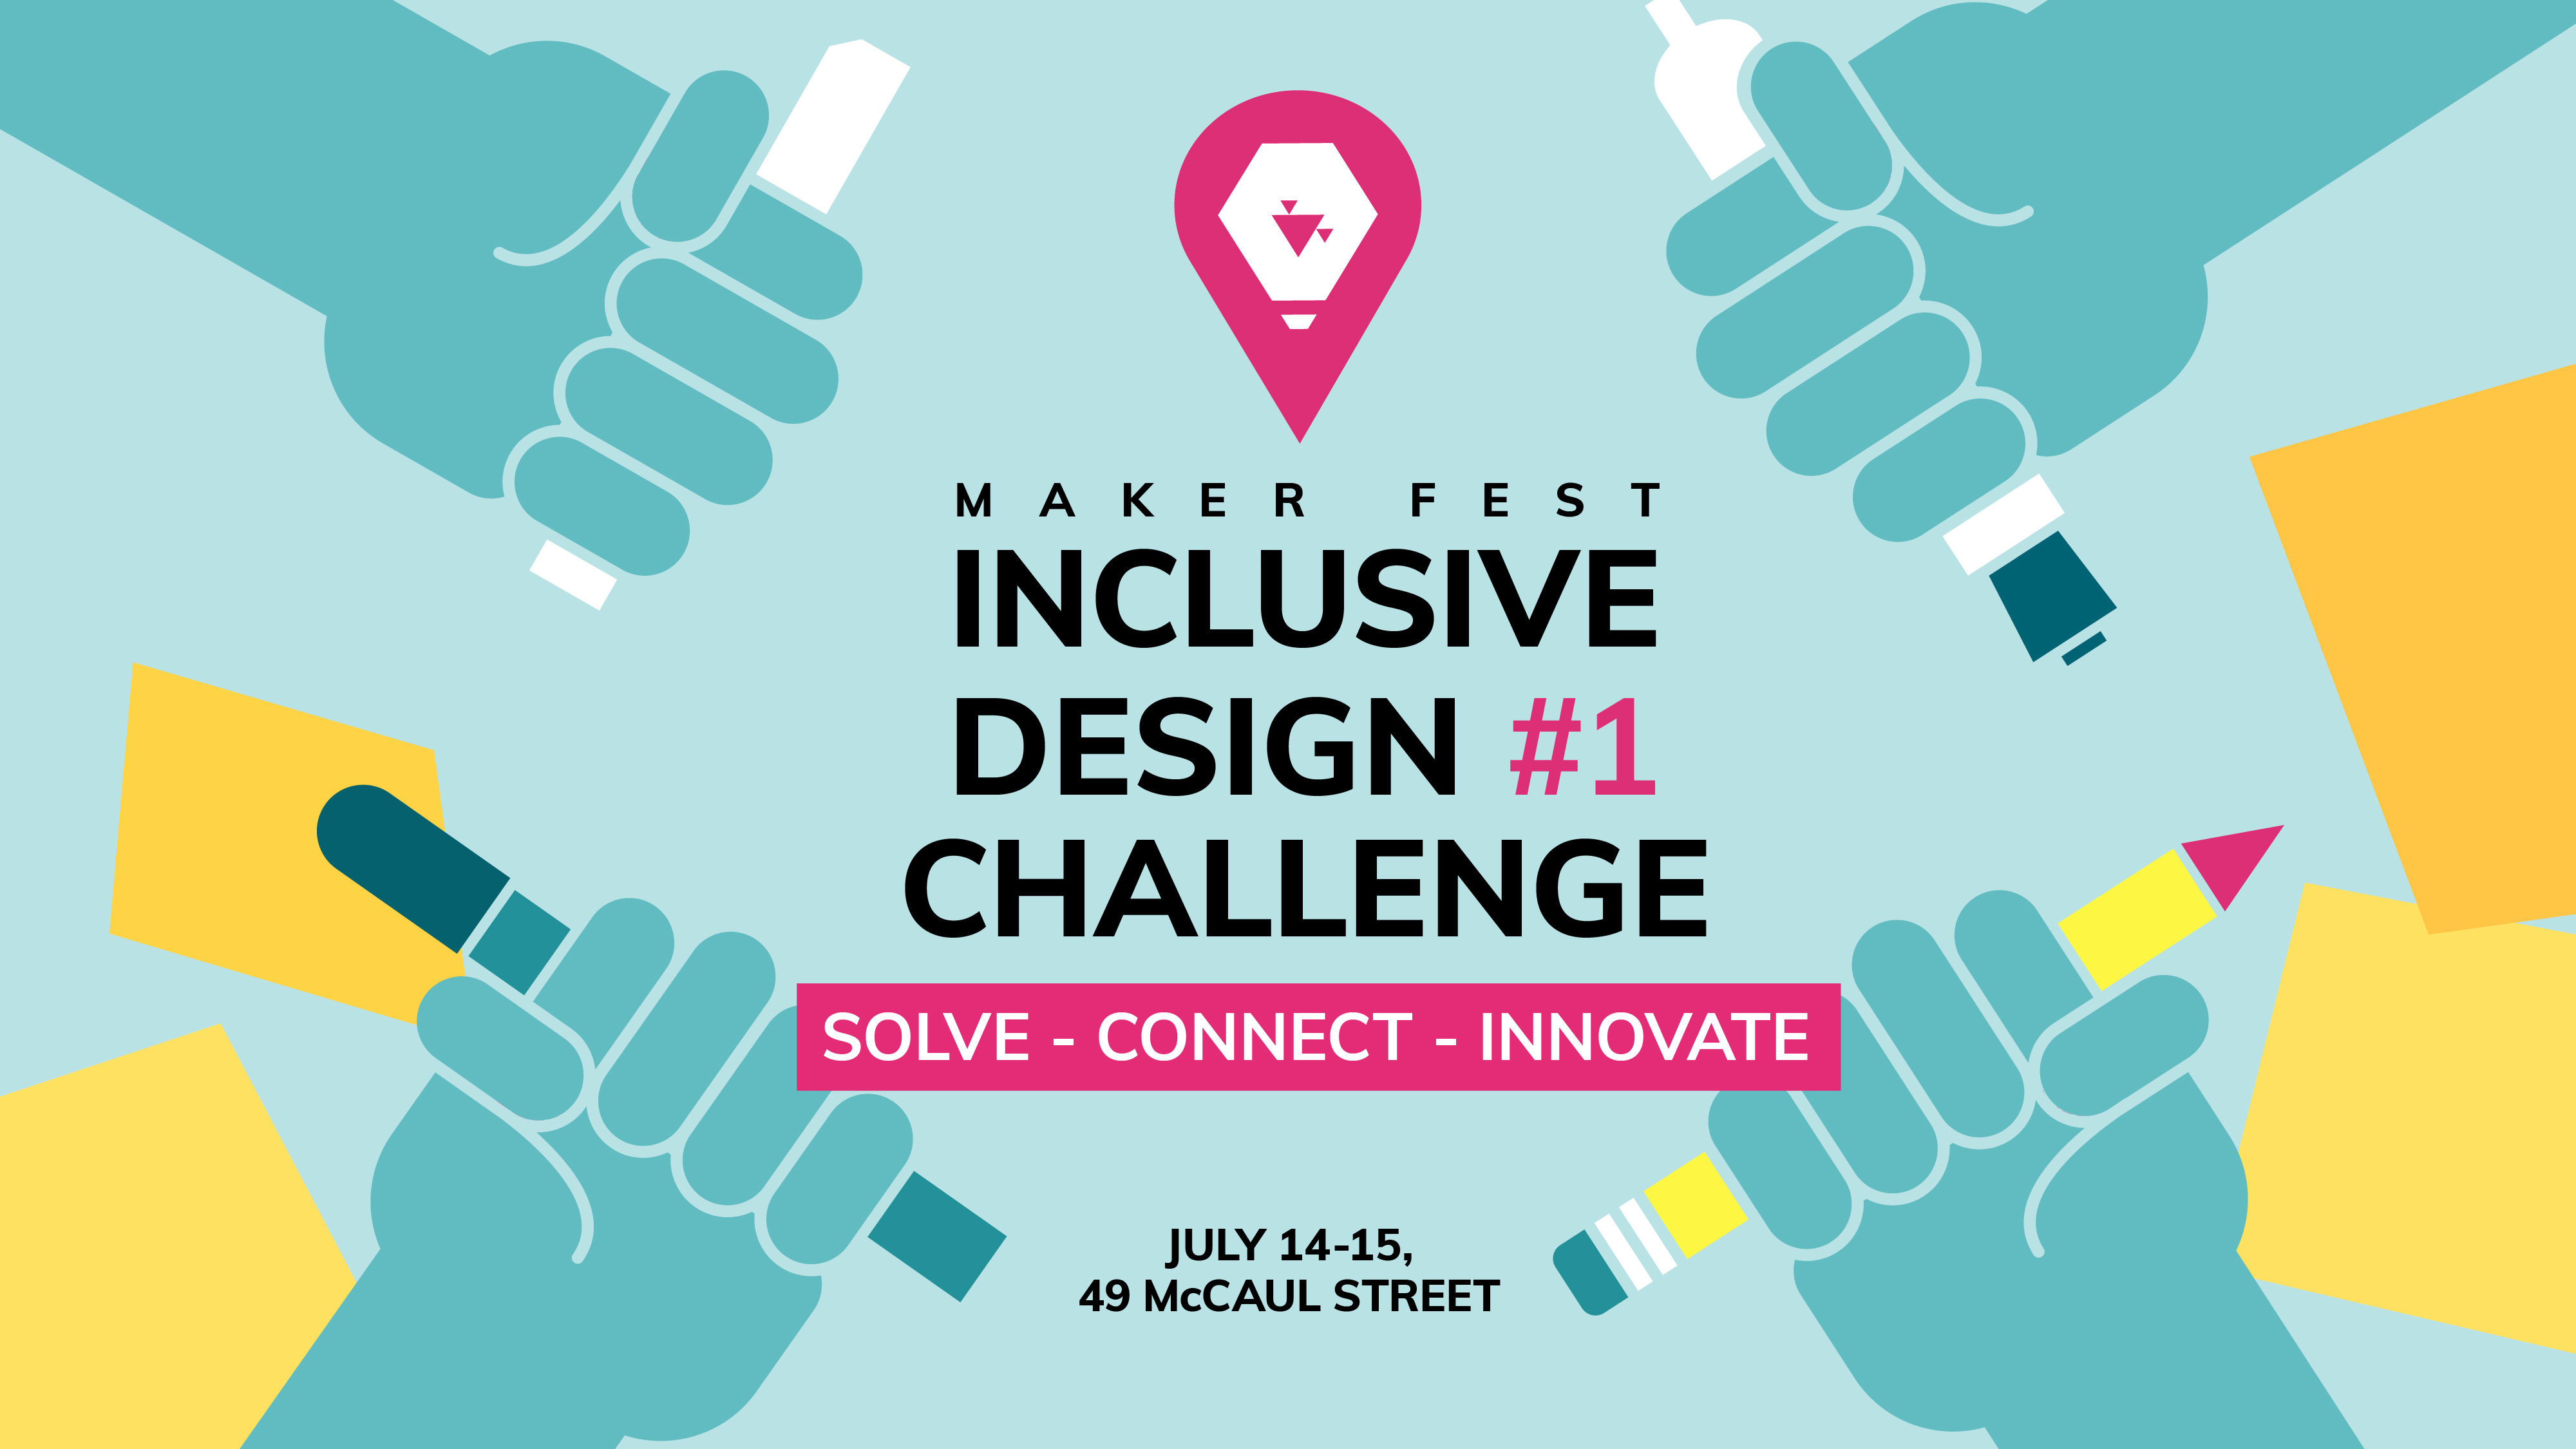 Inclusive Design Challenge with MakerFest